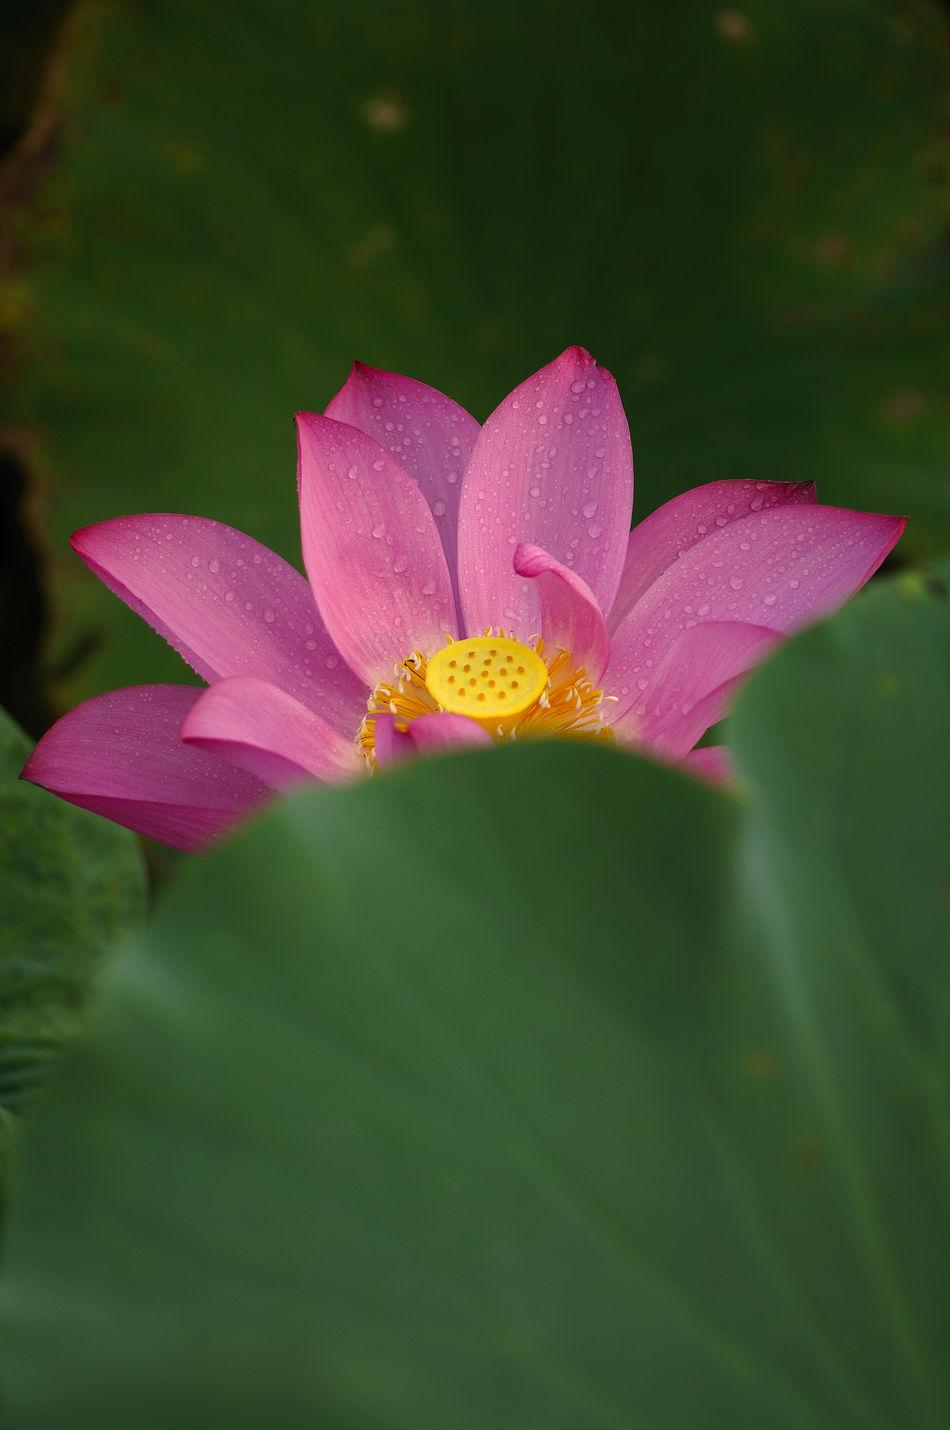 Beauty In Nature Blooming Close-up Day Drop Flower Flower Head Fragility Freshness Grow Growth Johnson Leaf Lotus Nature No People Outdoors Perfect Petal Pink Color Plant Up Water Wet